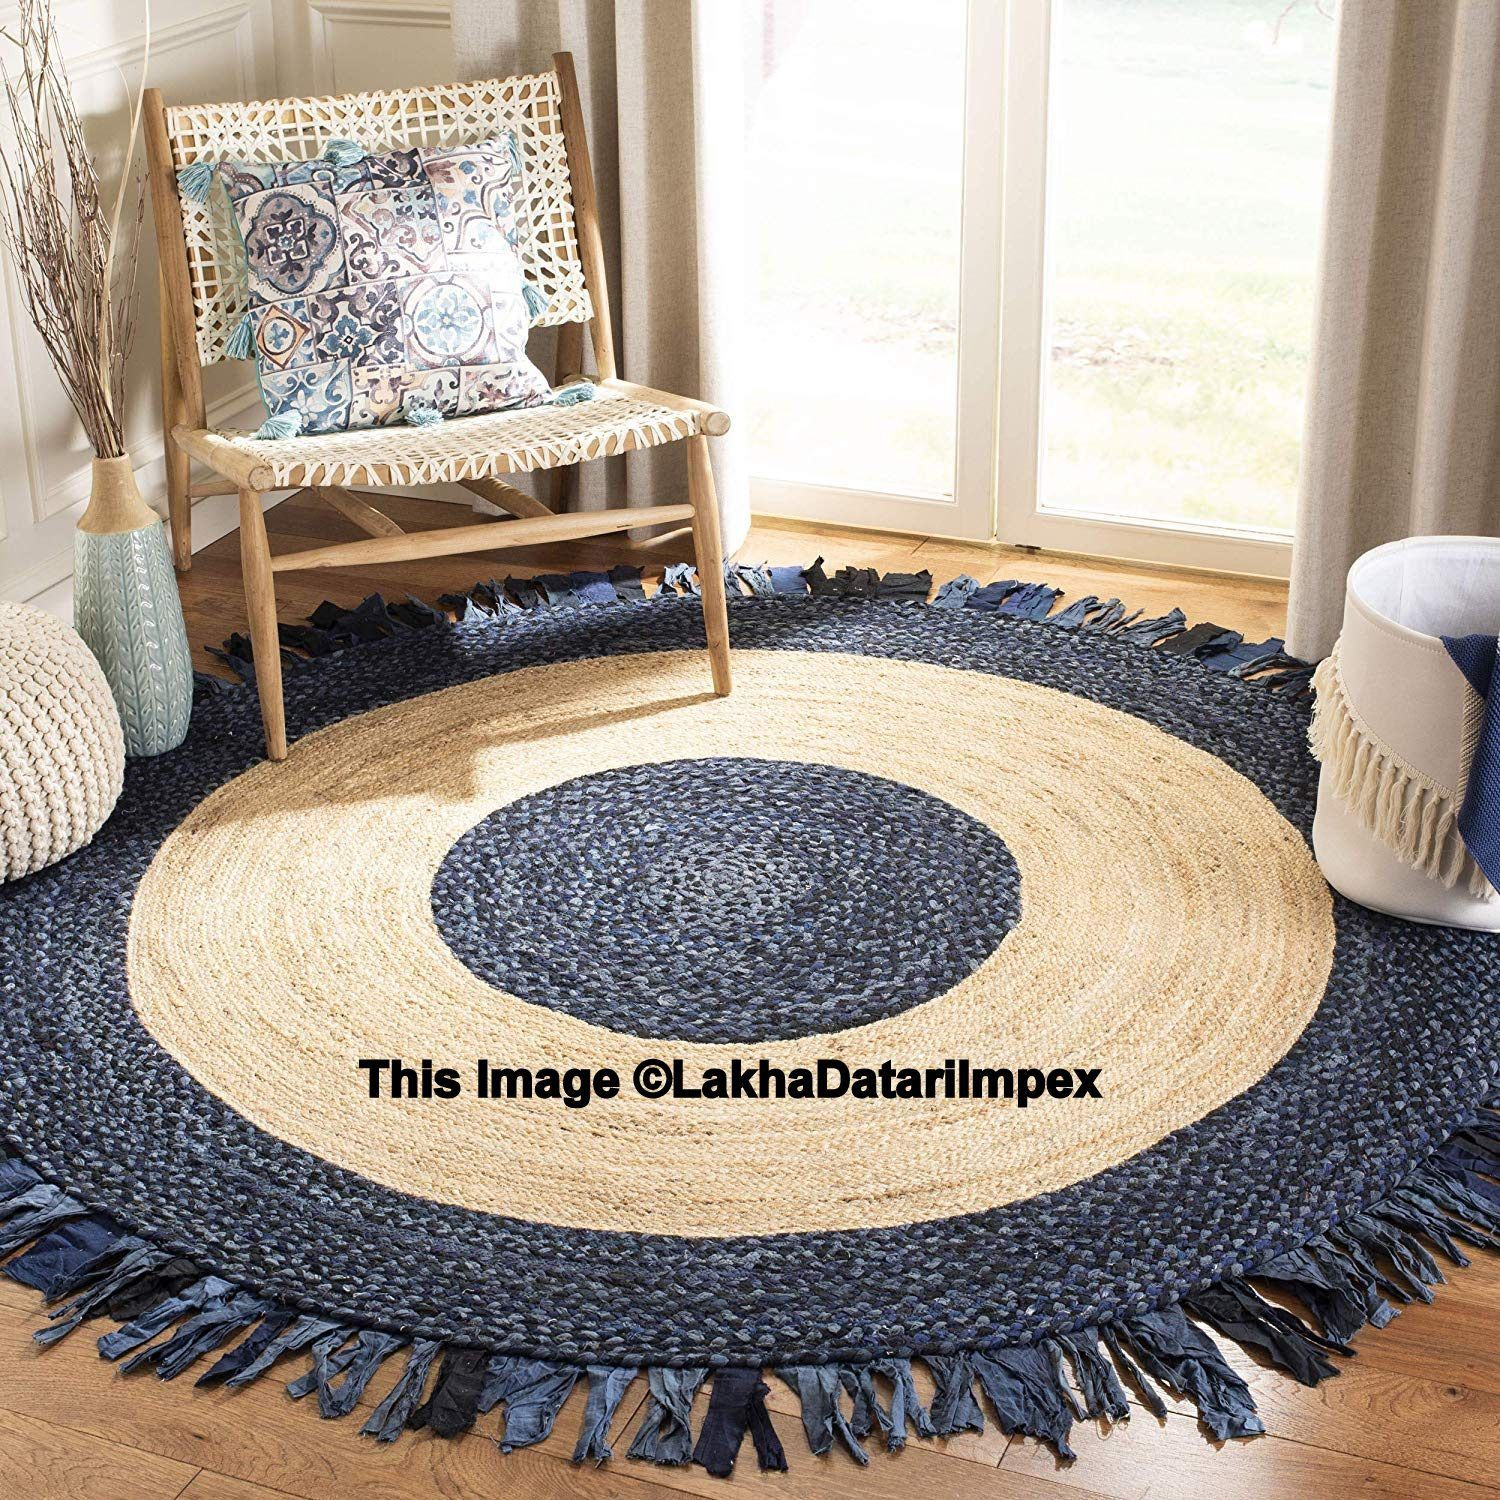 Indian Vintage Area Round Meditation Mat Decor Natural Antique